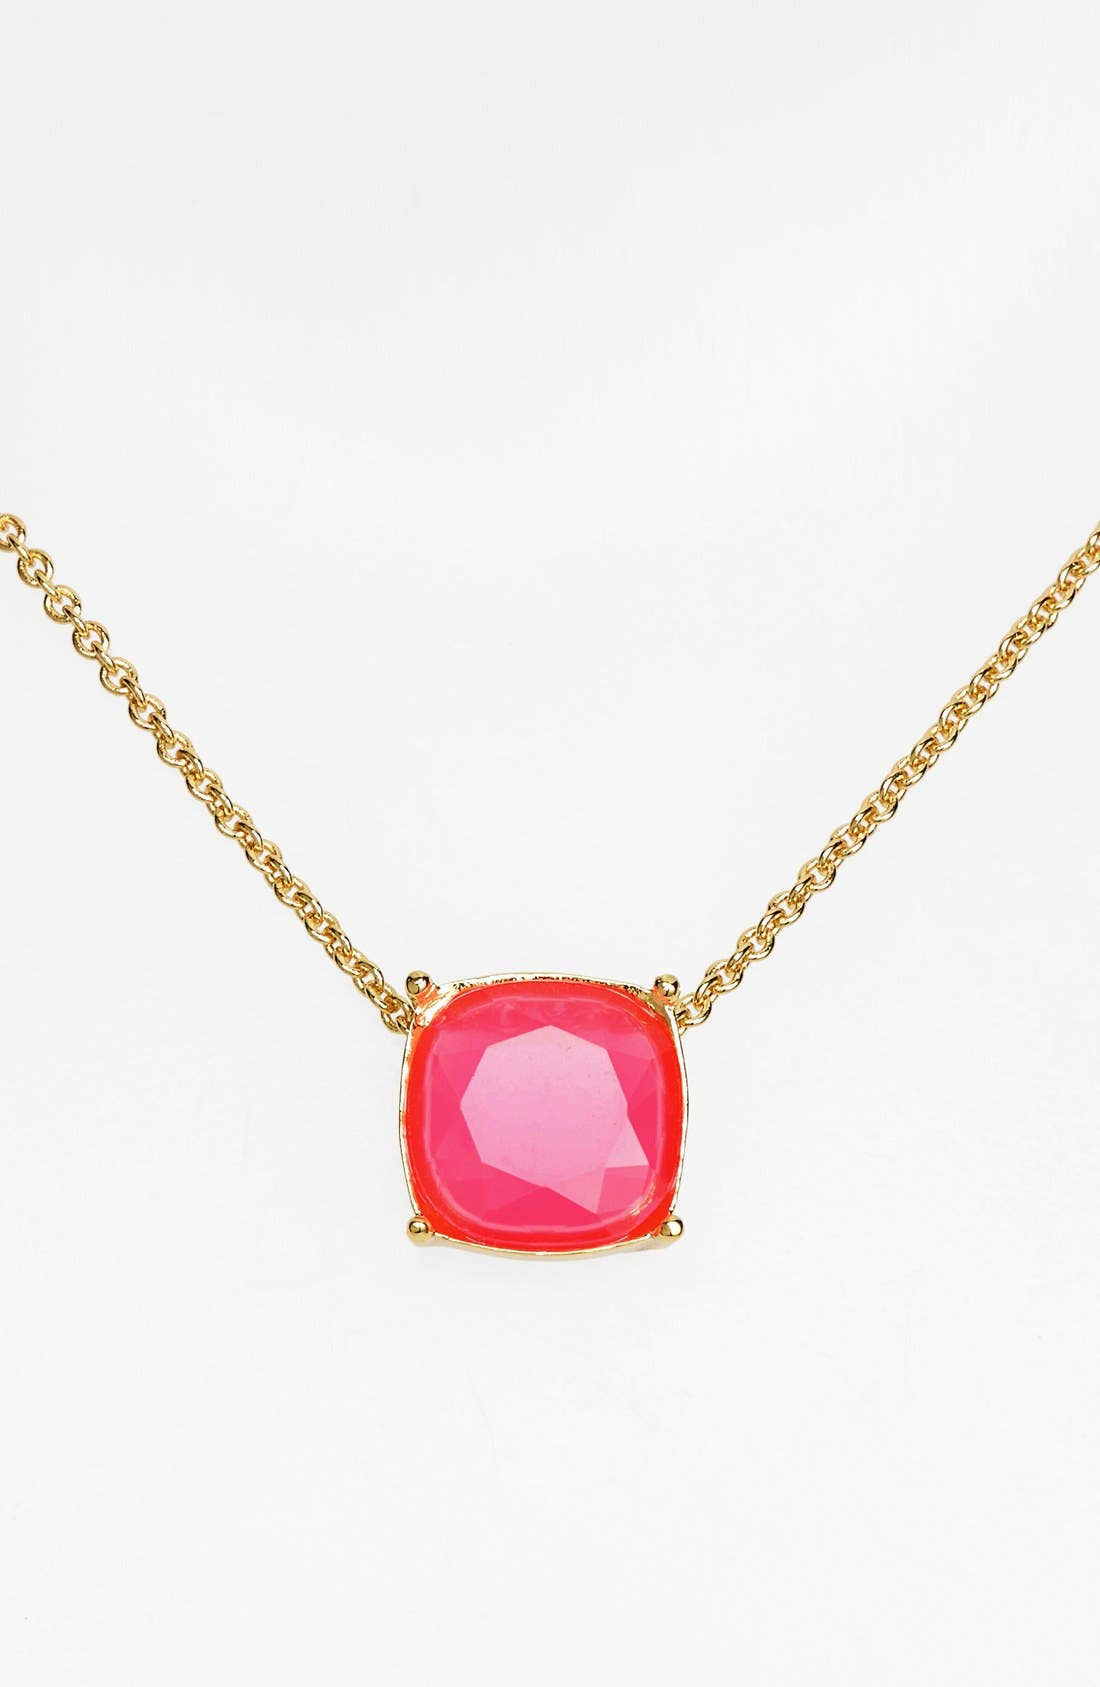 Main Image - kate spade new york 'cause a stir' stone pendant necklace